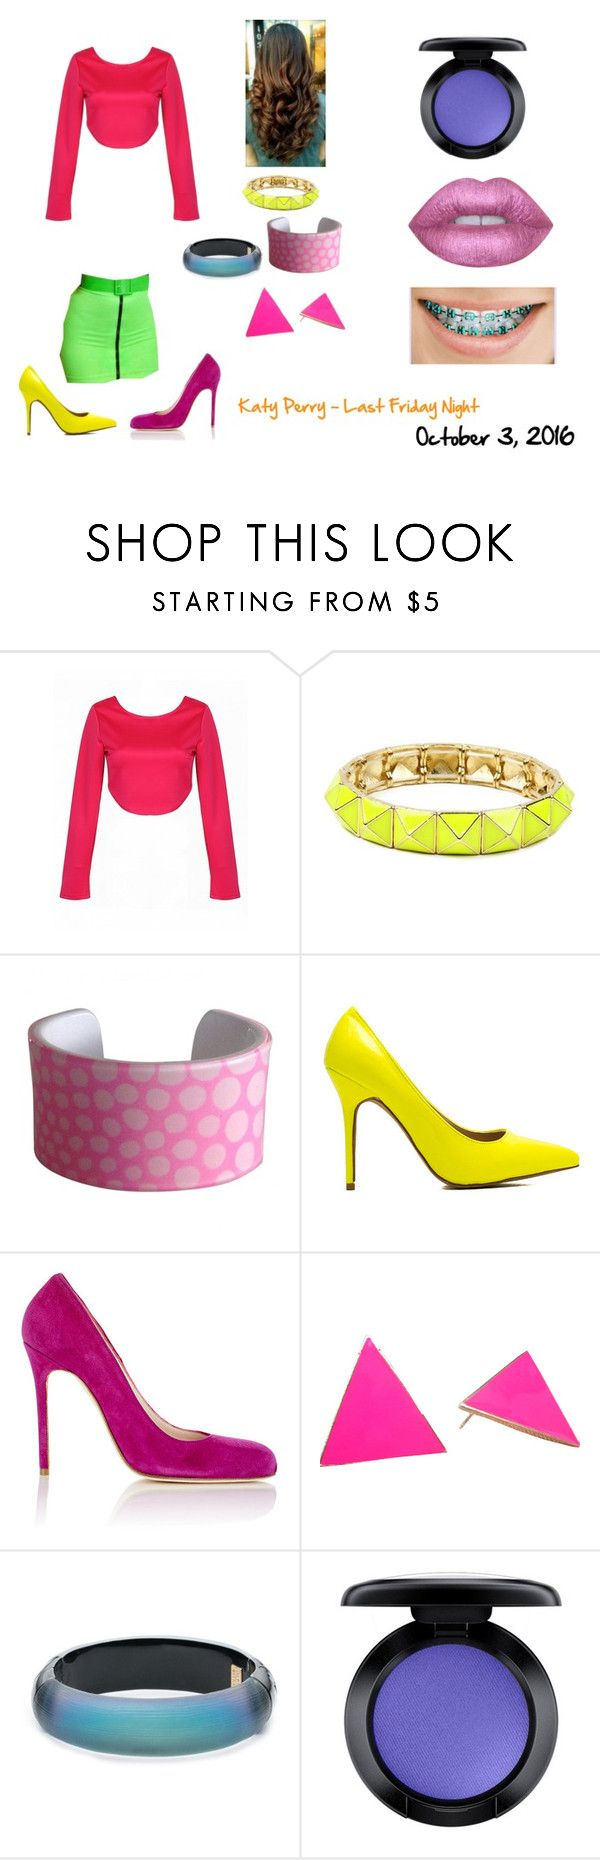 """""""Day 3 - October 3, 2016 - Katy Perry - Last Friday Night  (Halloween Costume Ideas)"""" by smmashley ❤ liked on Polyvore featuring Amrita Singh, Sonia Rykiel, Barneys New York, Alexis Bittar, MAC Cosmetics and Lime Crime"""